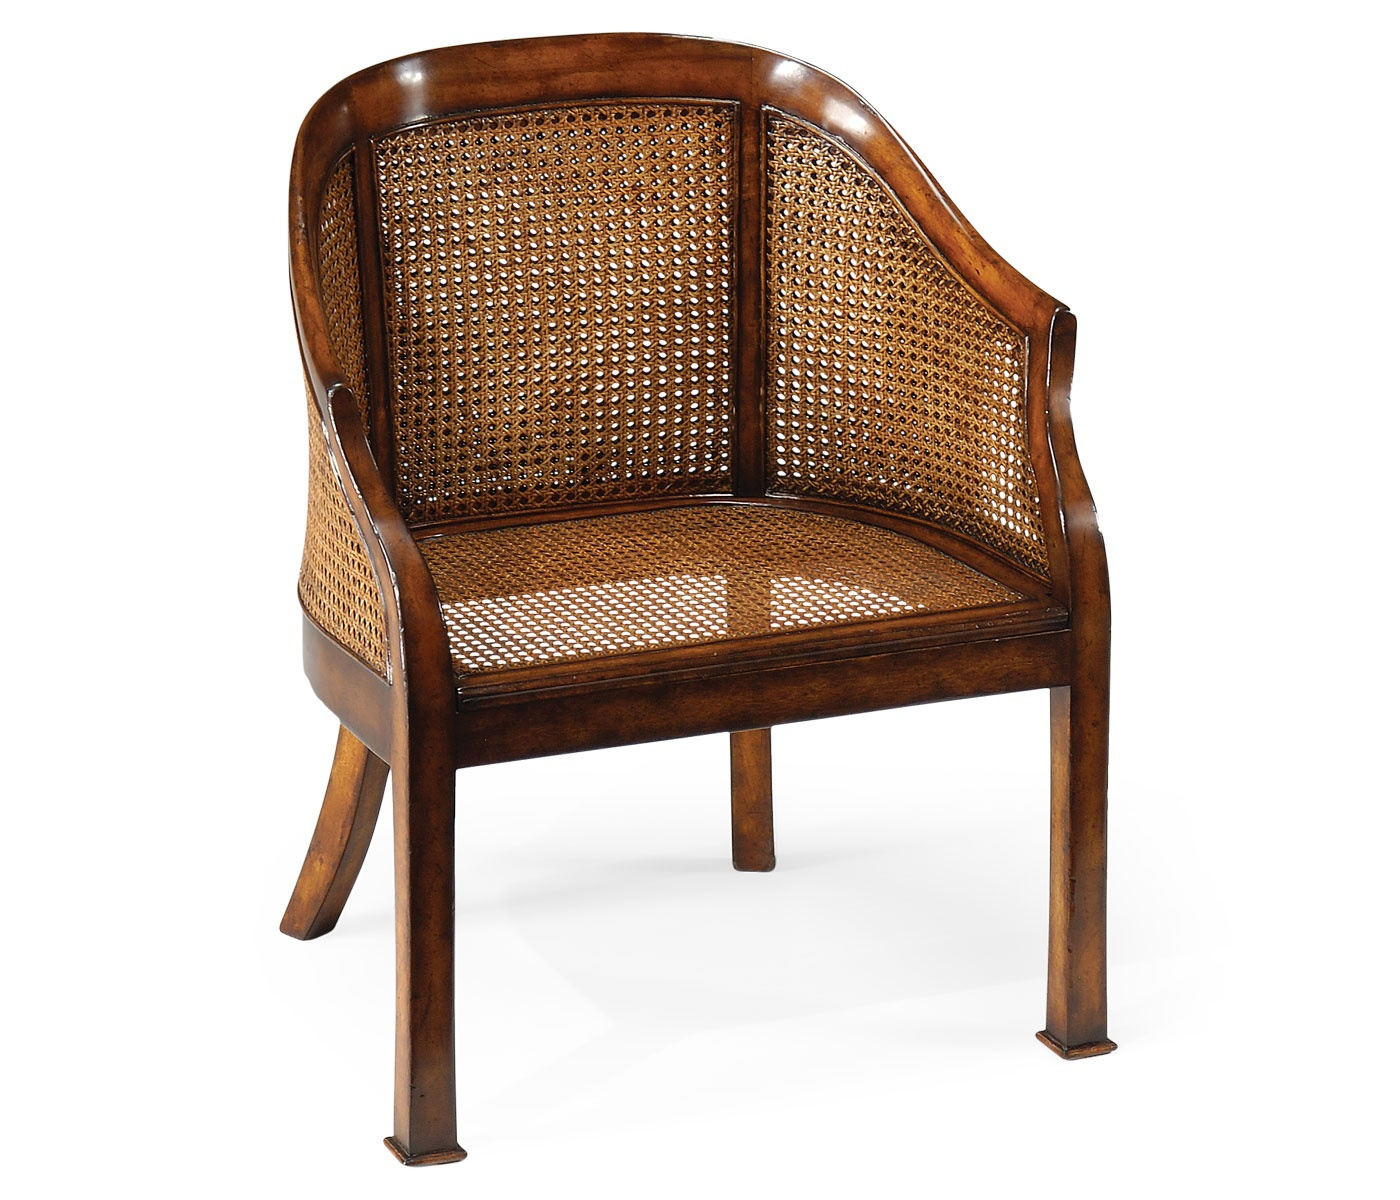 Chair with wicker seat Country Farmhouse Jonathan